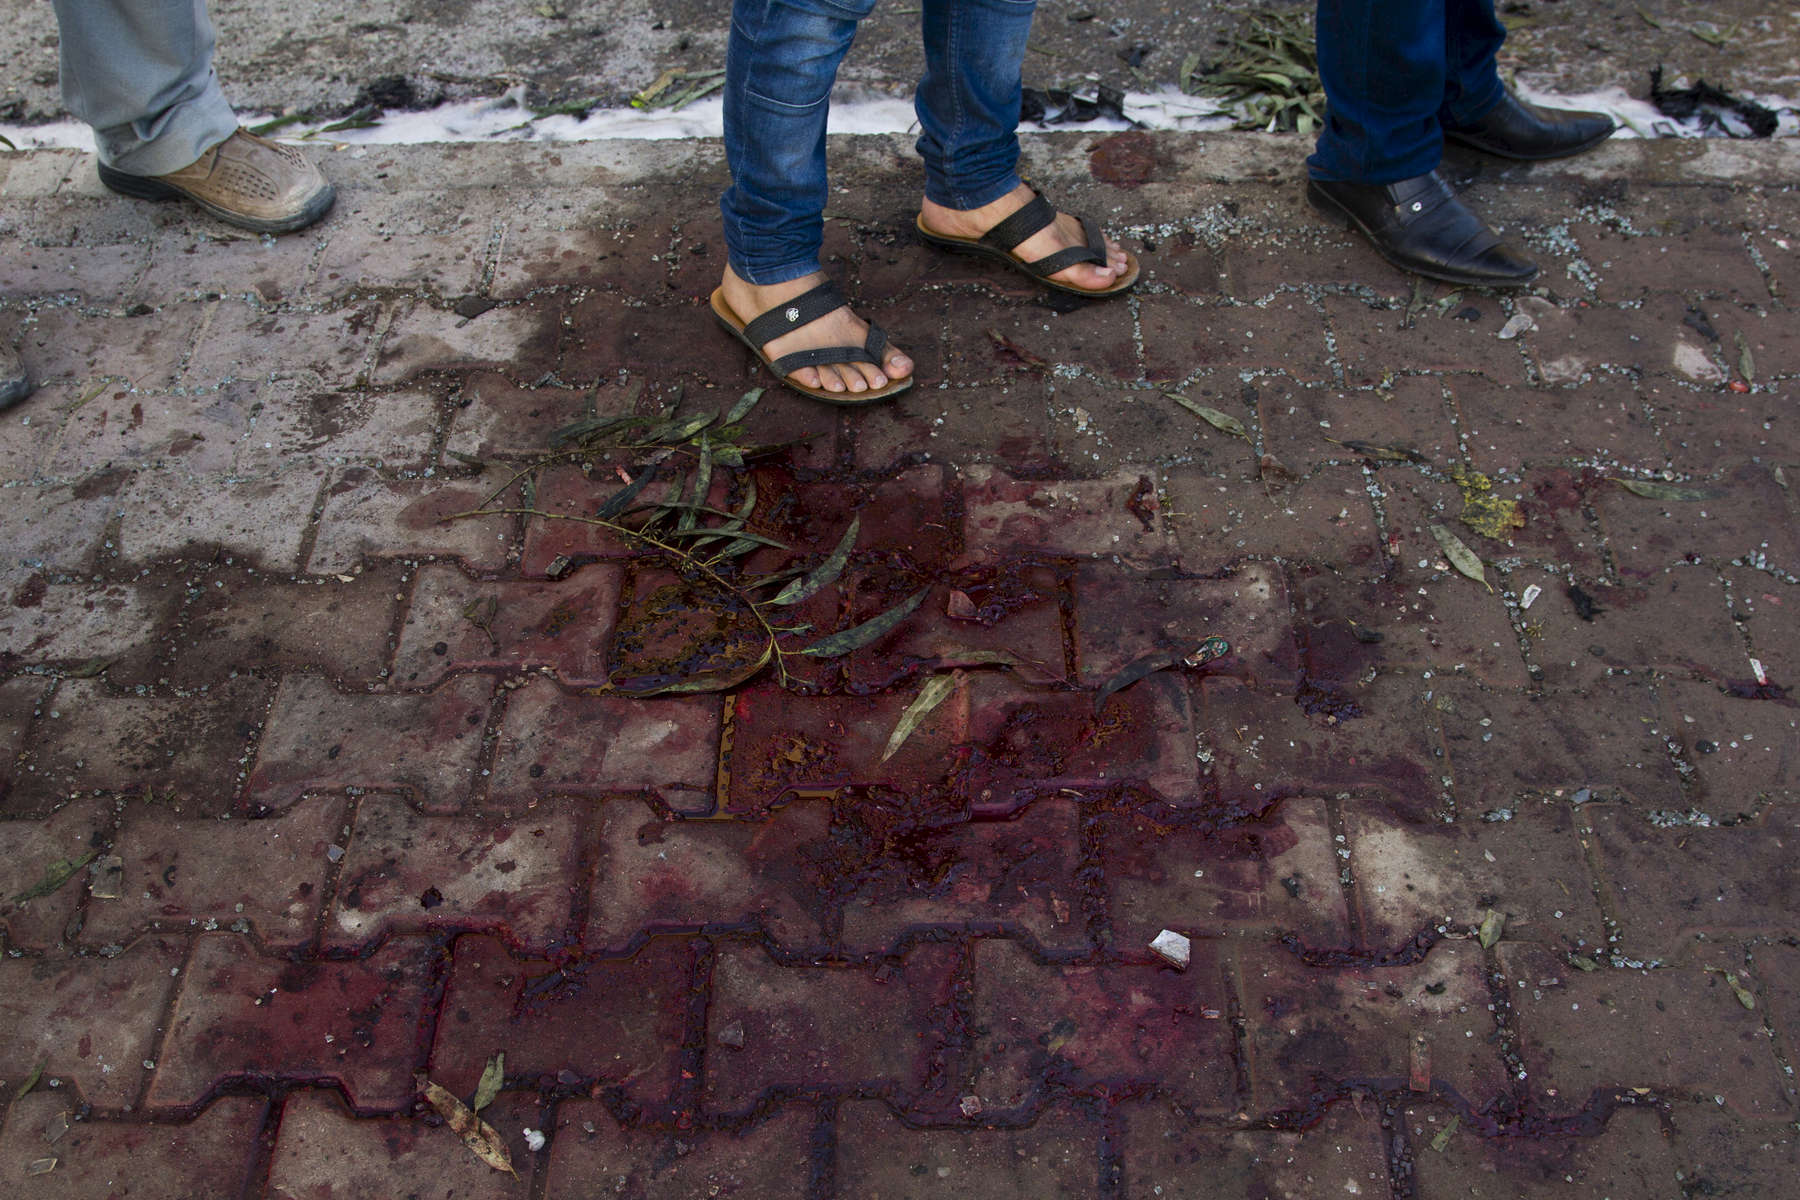 25/06/14, Kirkuk, Iraq -- Blood on the pavement at the site of a suicide bombing in Kirkuk which killed 5 people and wounded other 19 earlier in the afternoon. Rahimawa neighbourhood is a Kurdish area.